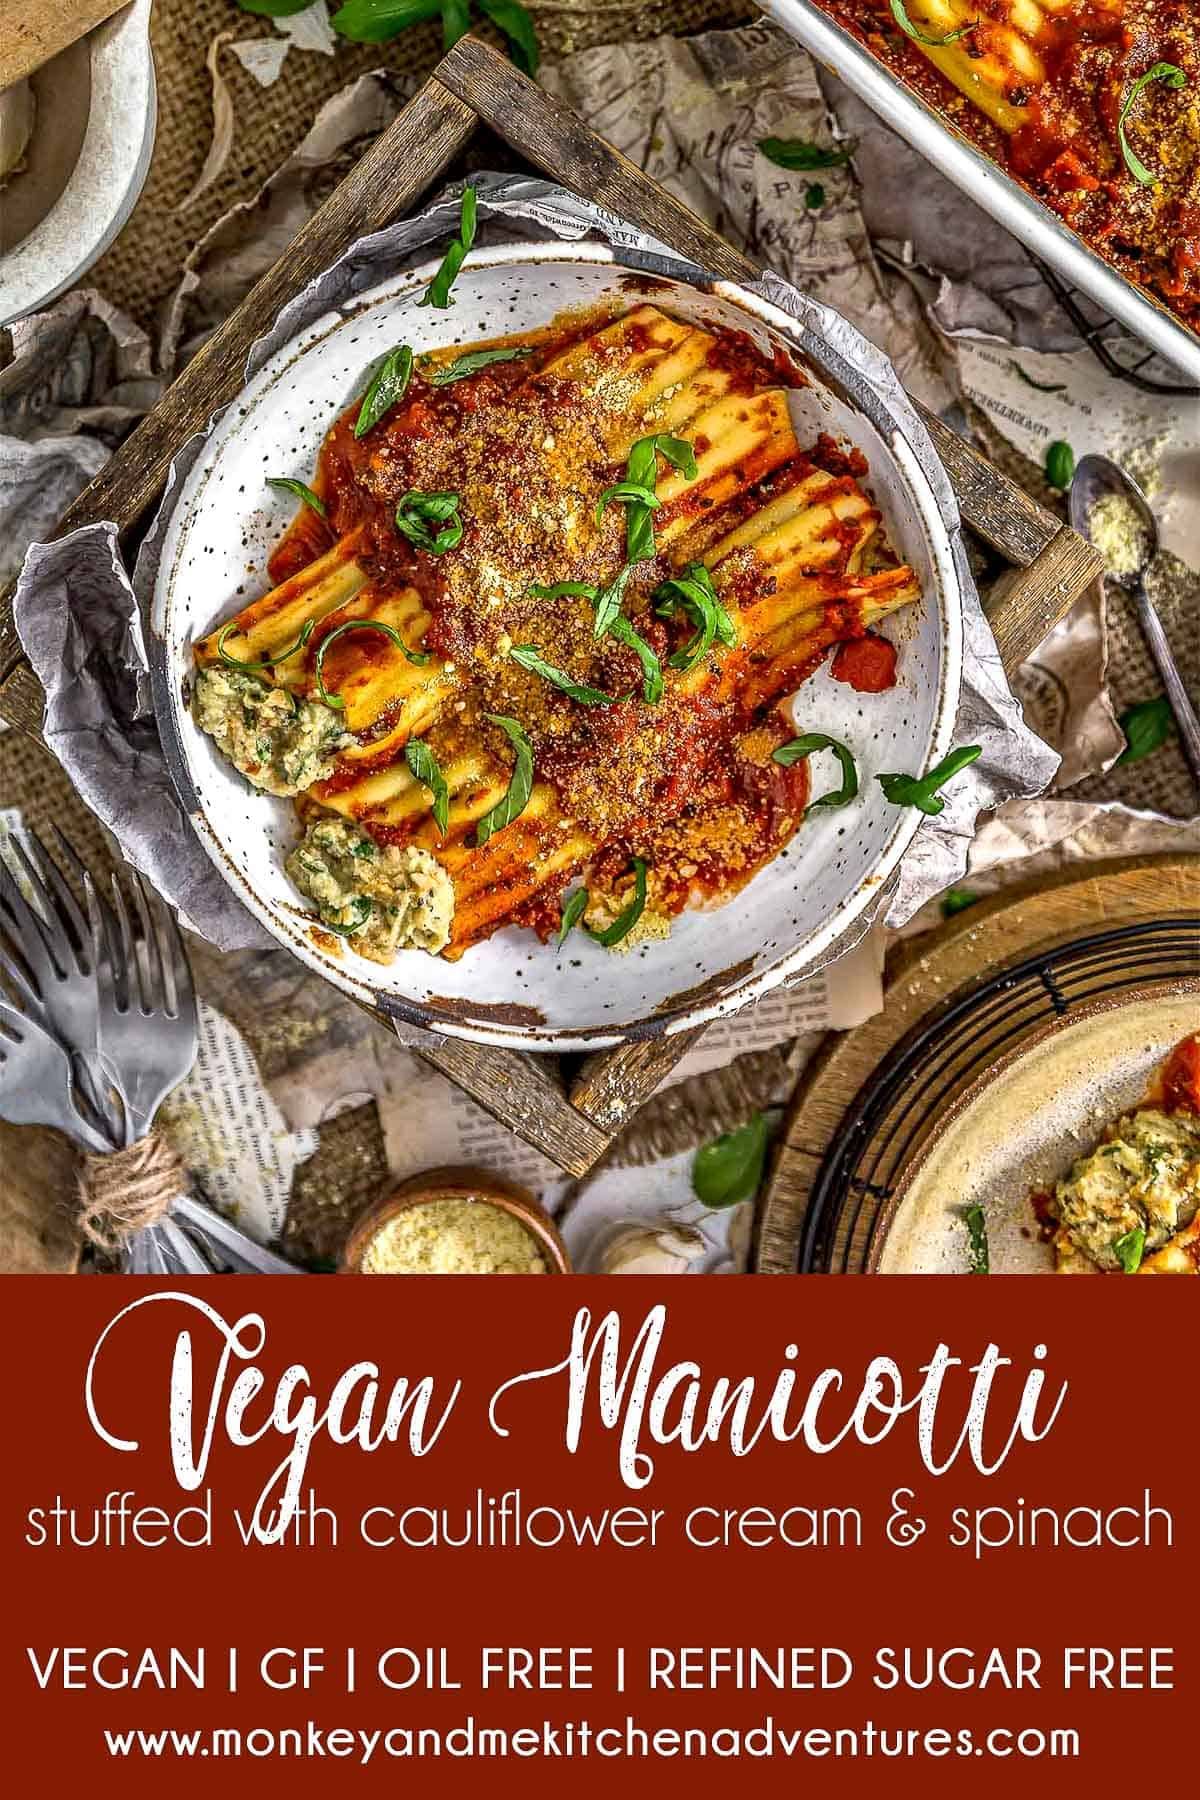 Vegan Manicotti Stuffed with Cauliflower Cream and Spinach with text description